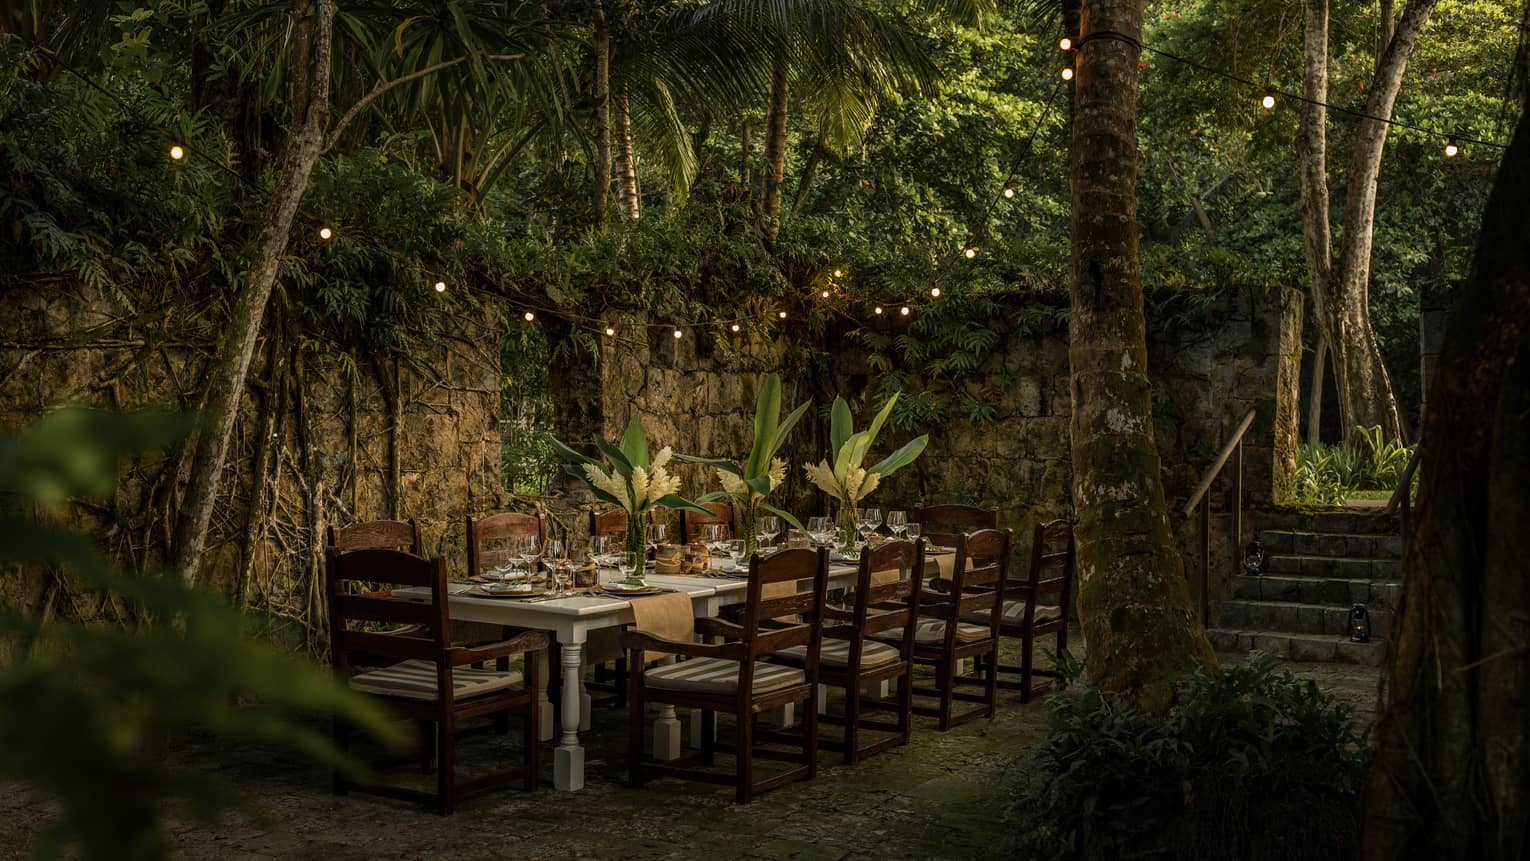 Wooden table with chairs outdoors surrounded by greenery and fairy lights at night